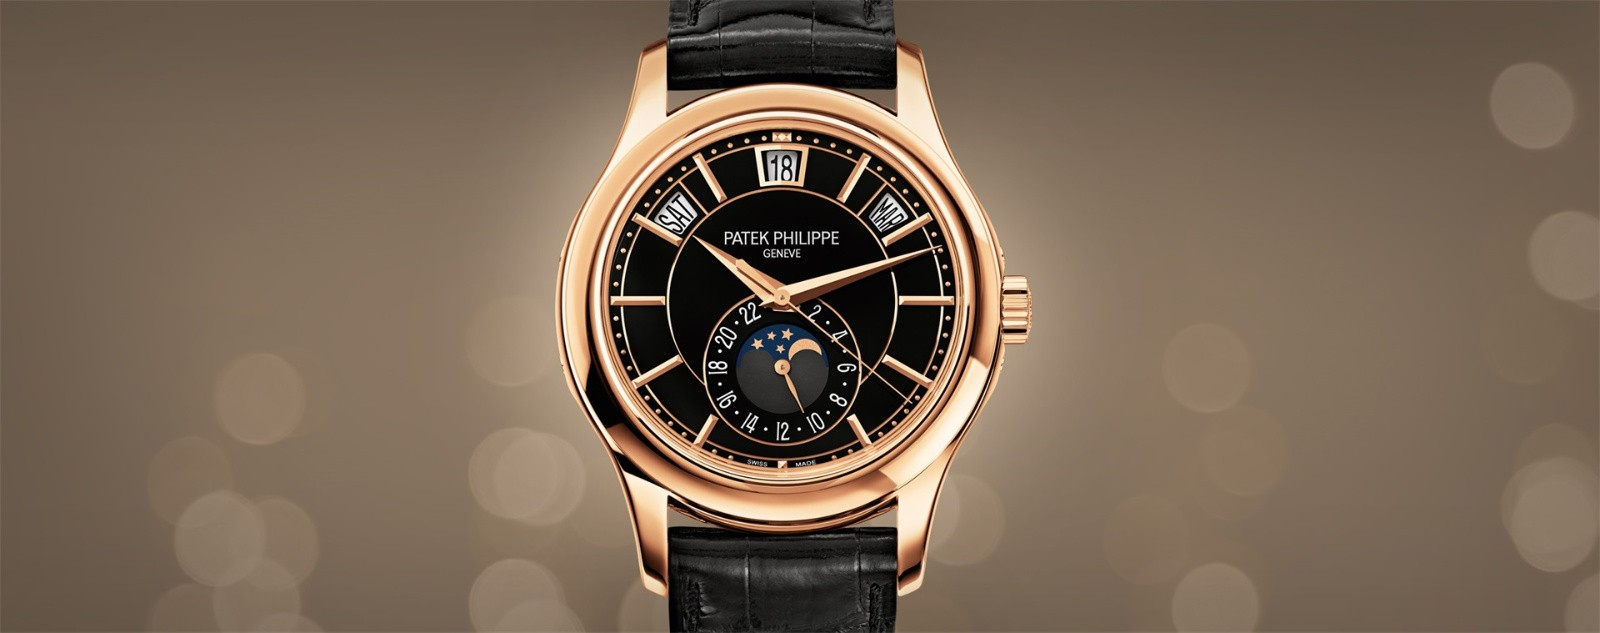 Patek Philippe, Palm Desert, California